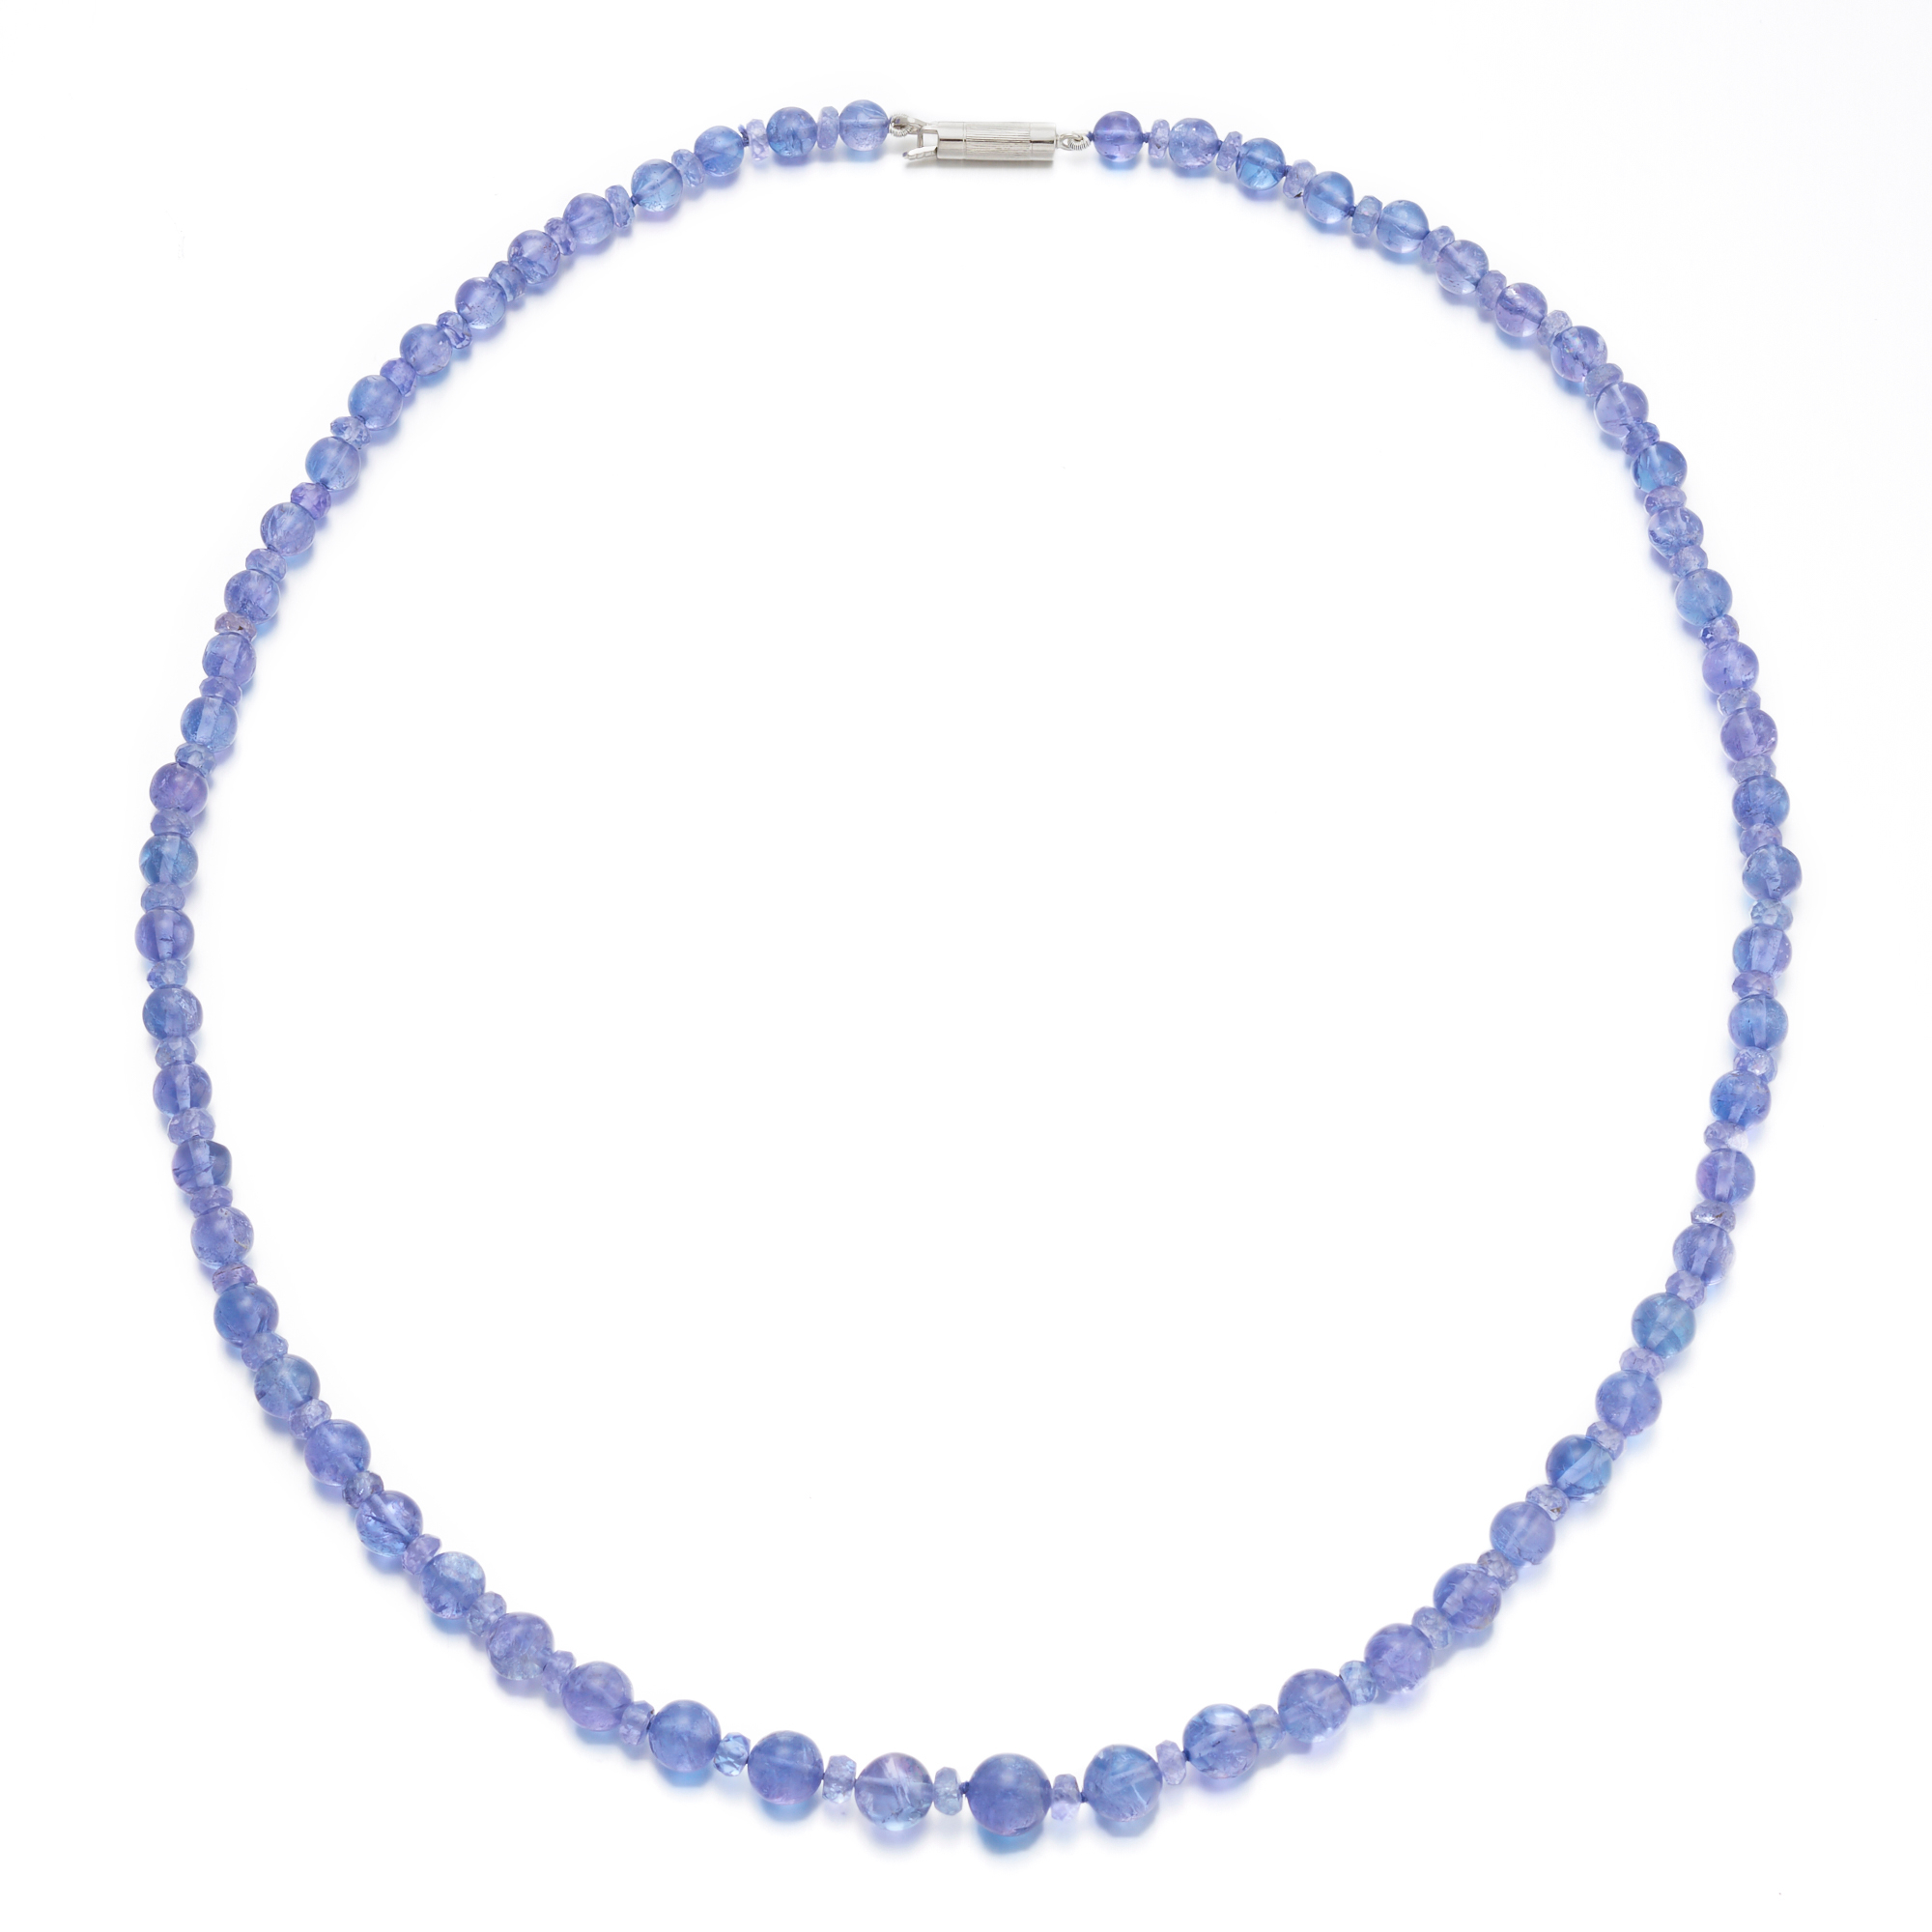 Gump's Graduated Smooth & Faceted Tanzanite Necklace